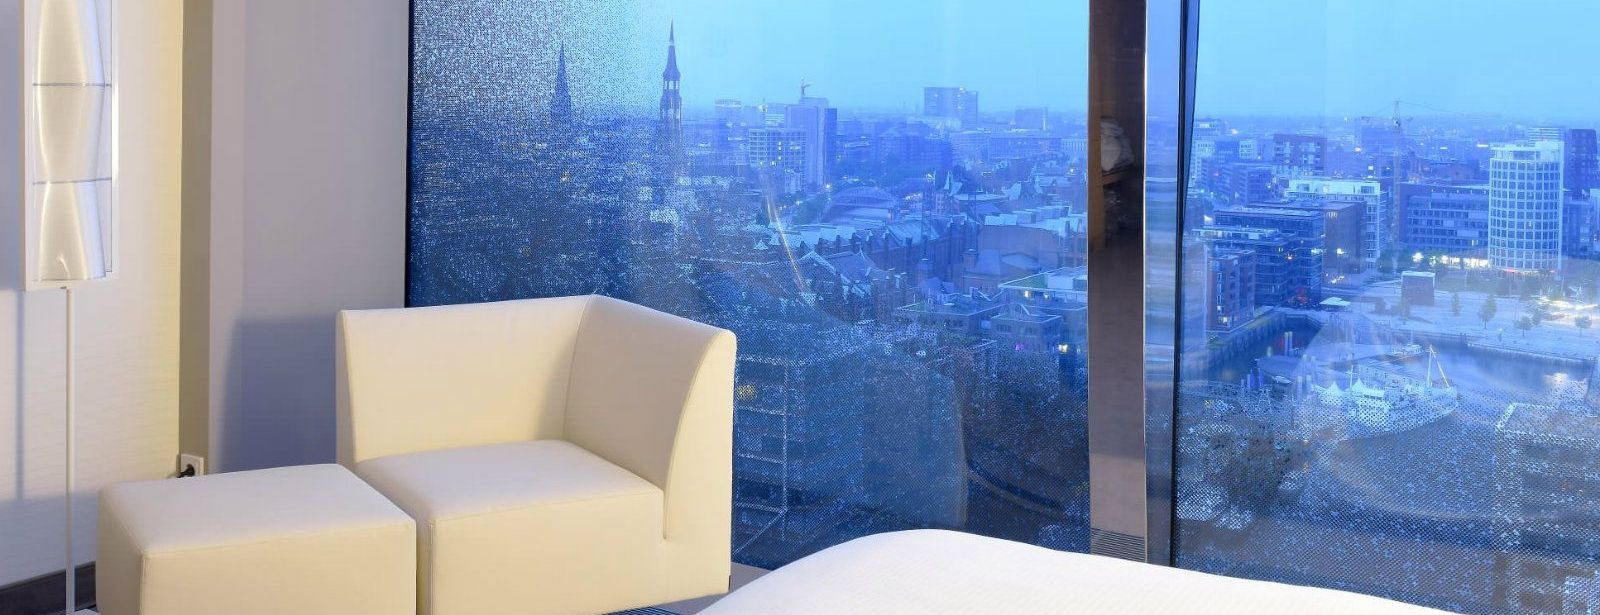 The Westin Hamburg Hotel - Stunning views of Hamburg